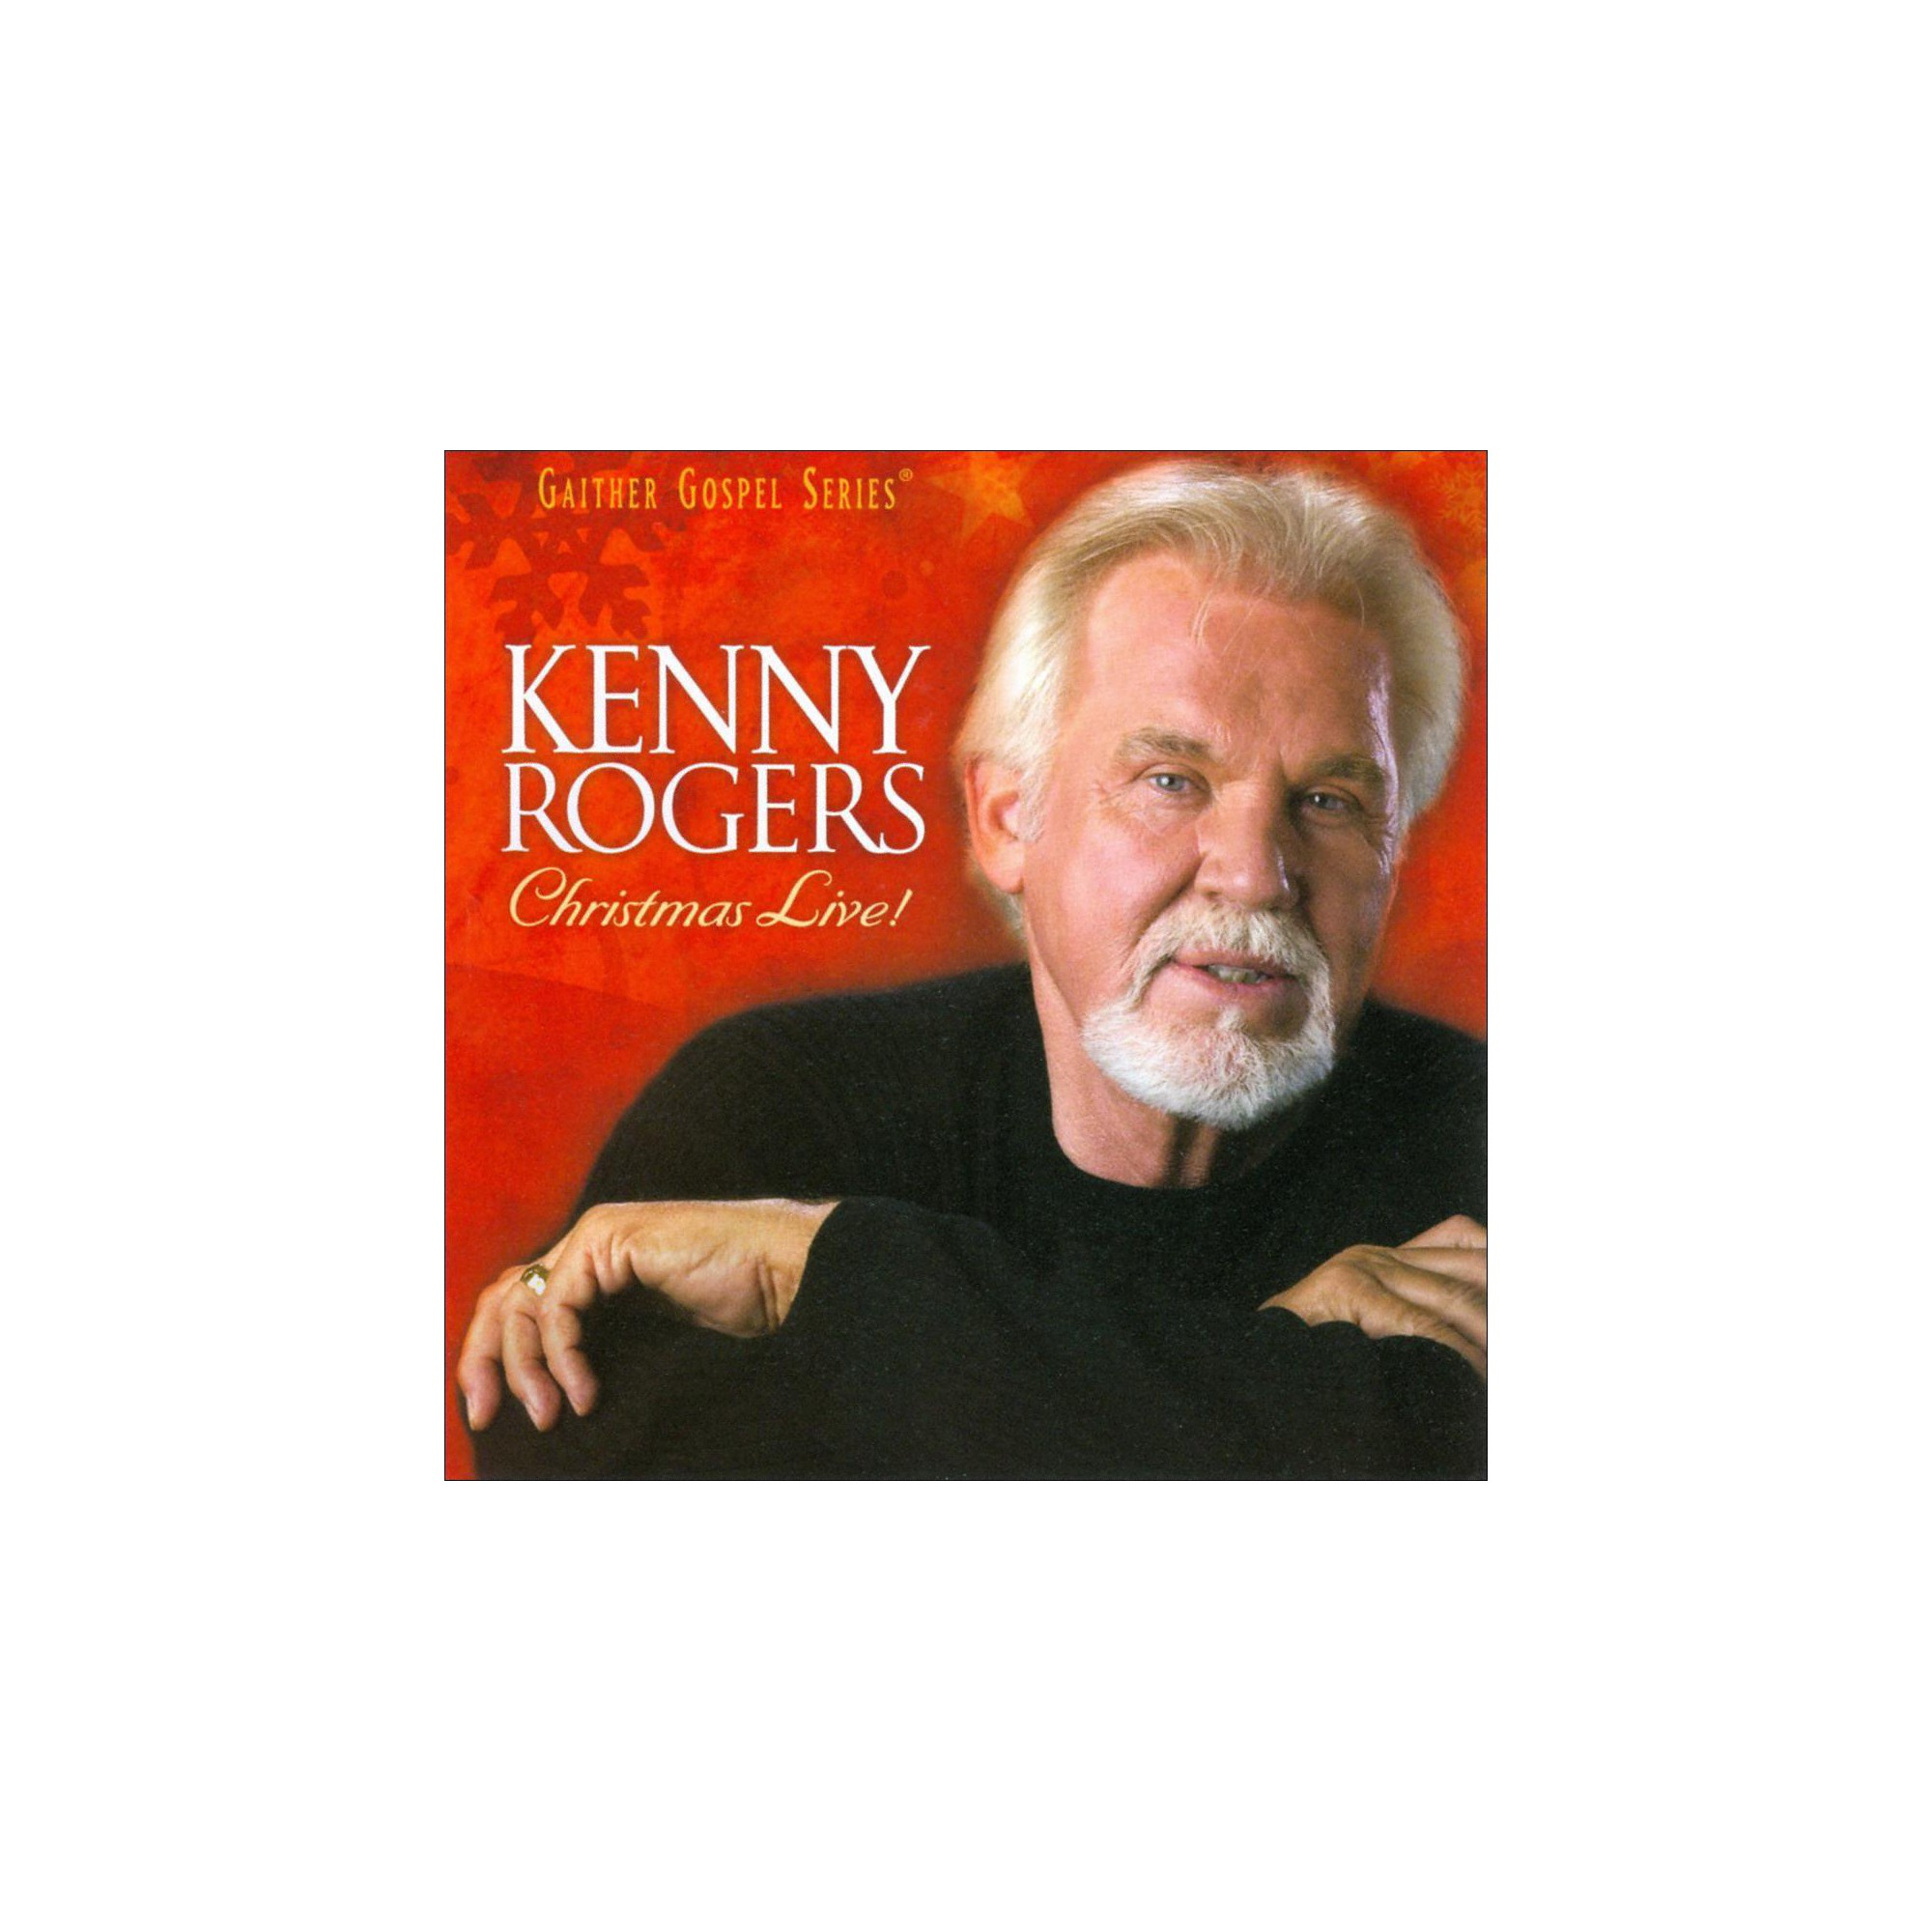 Kenny rogers - Christmas live (CD) | Live cd and Products